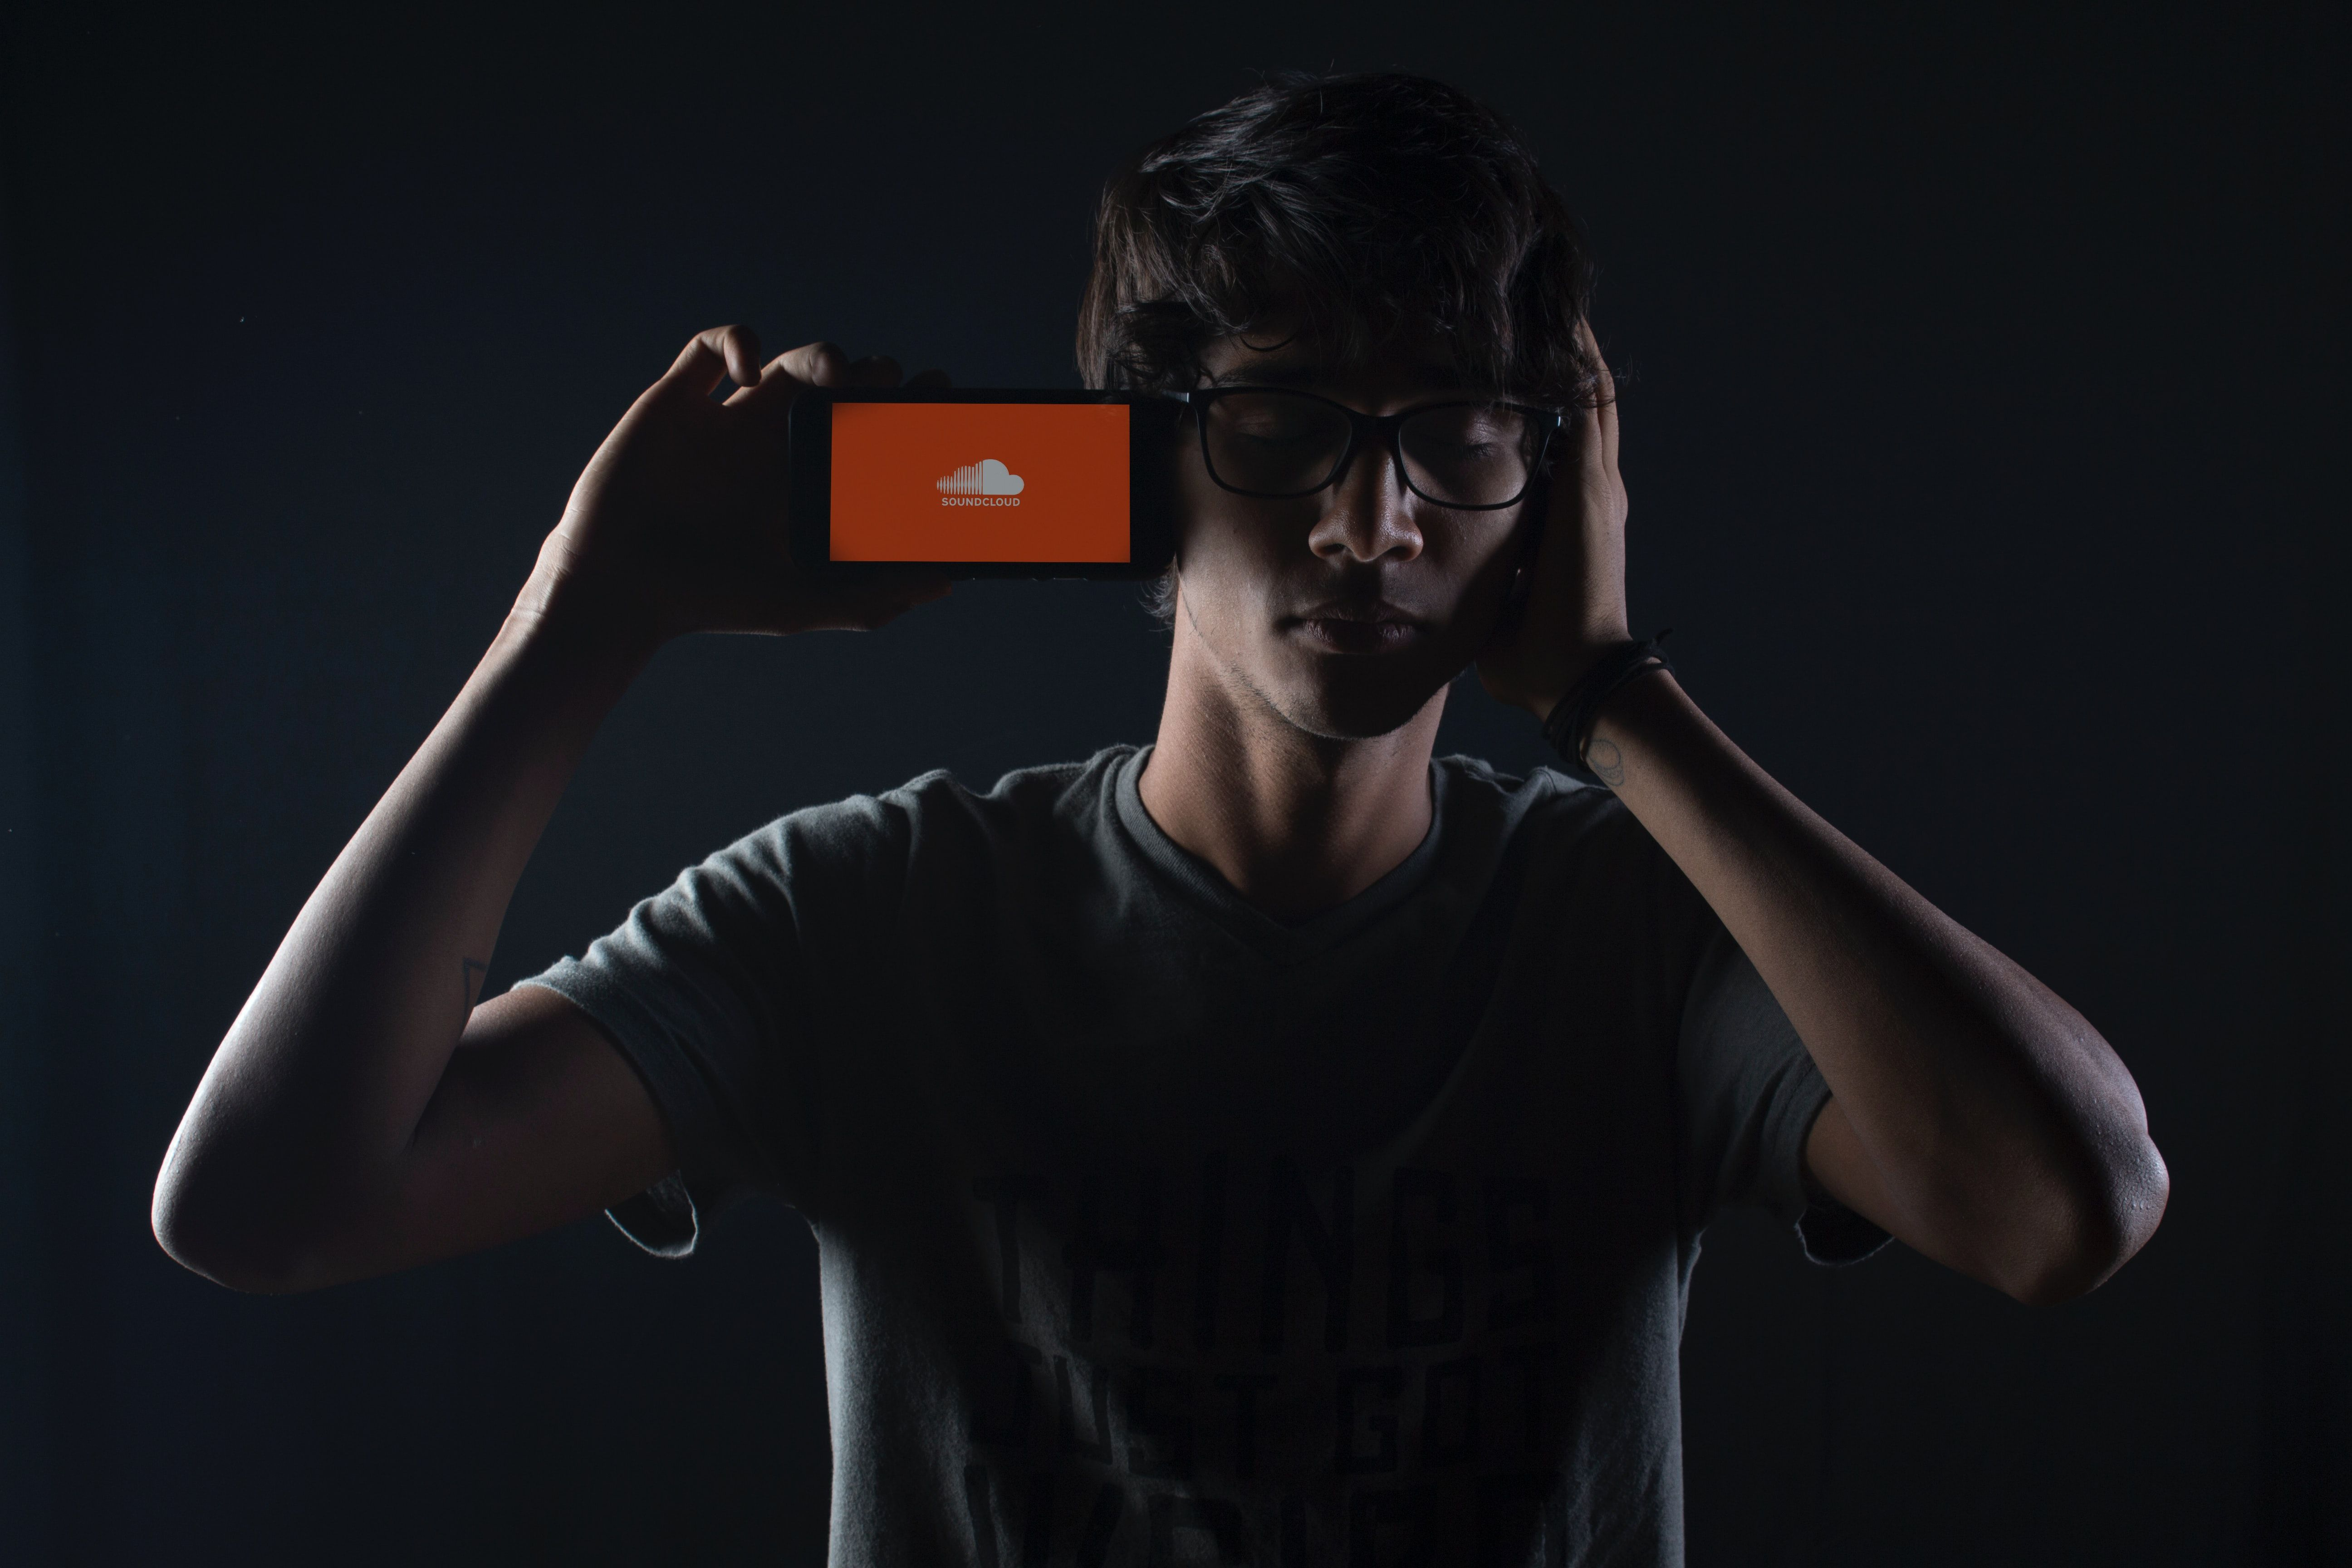 Establishing your overall brand theme is key to Soundcloud success.